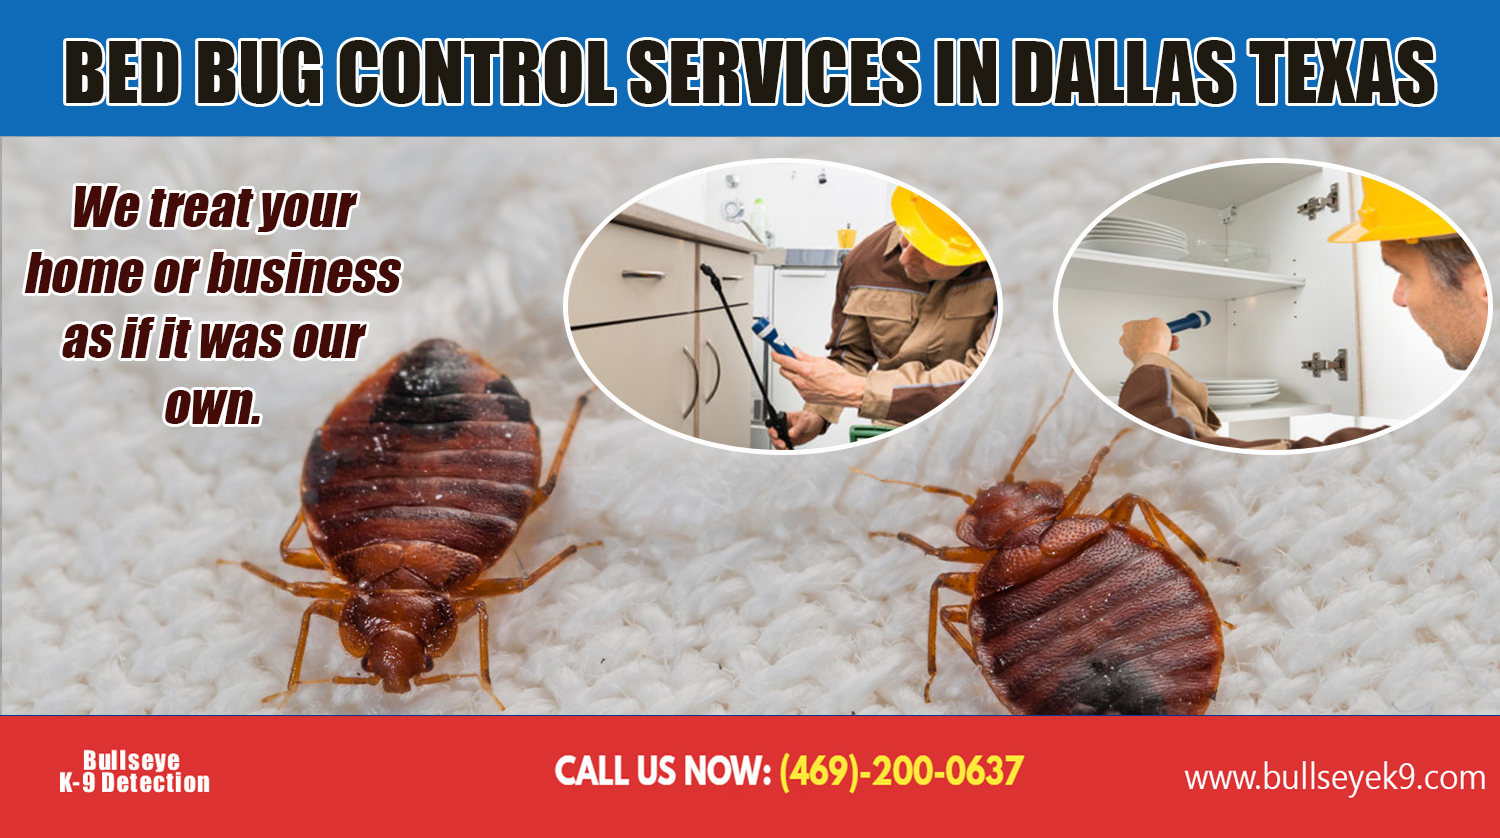 Bed Bug Control Services In Dallas Texas Imgpaste Net